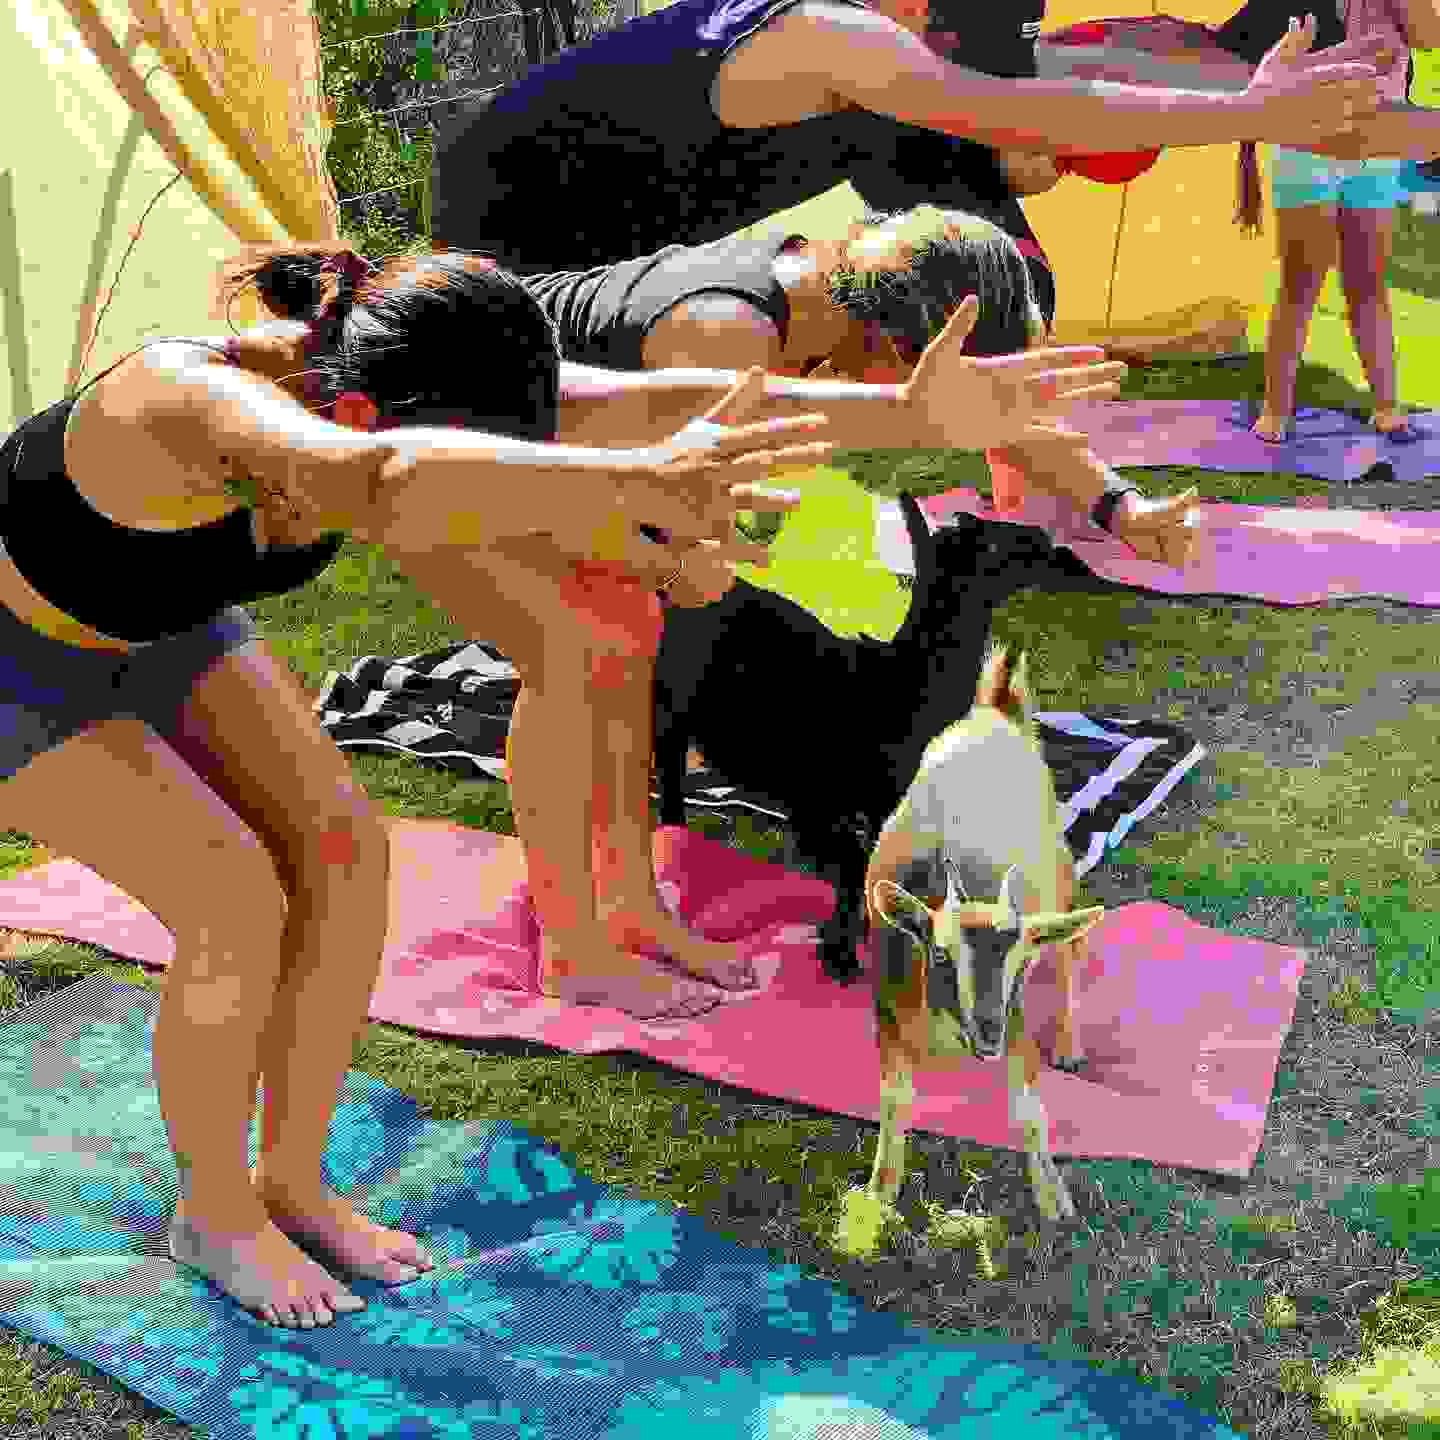 San Diego goat yoga, Ramona goat yoga, things to do in San Diego, things to do in Ramona